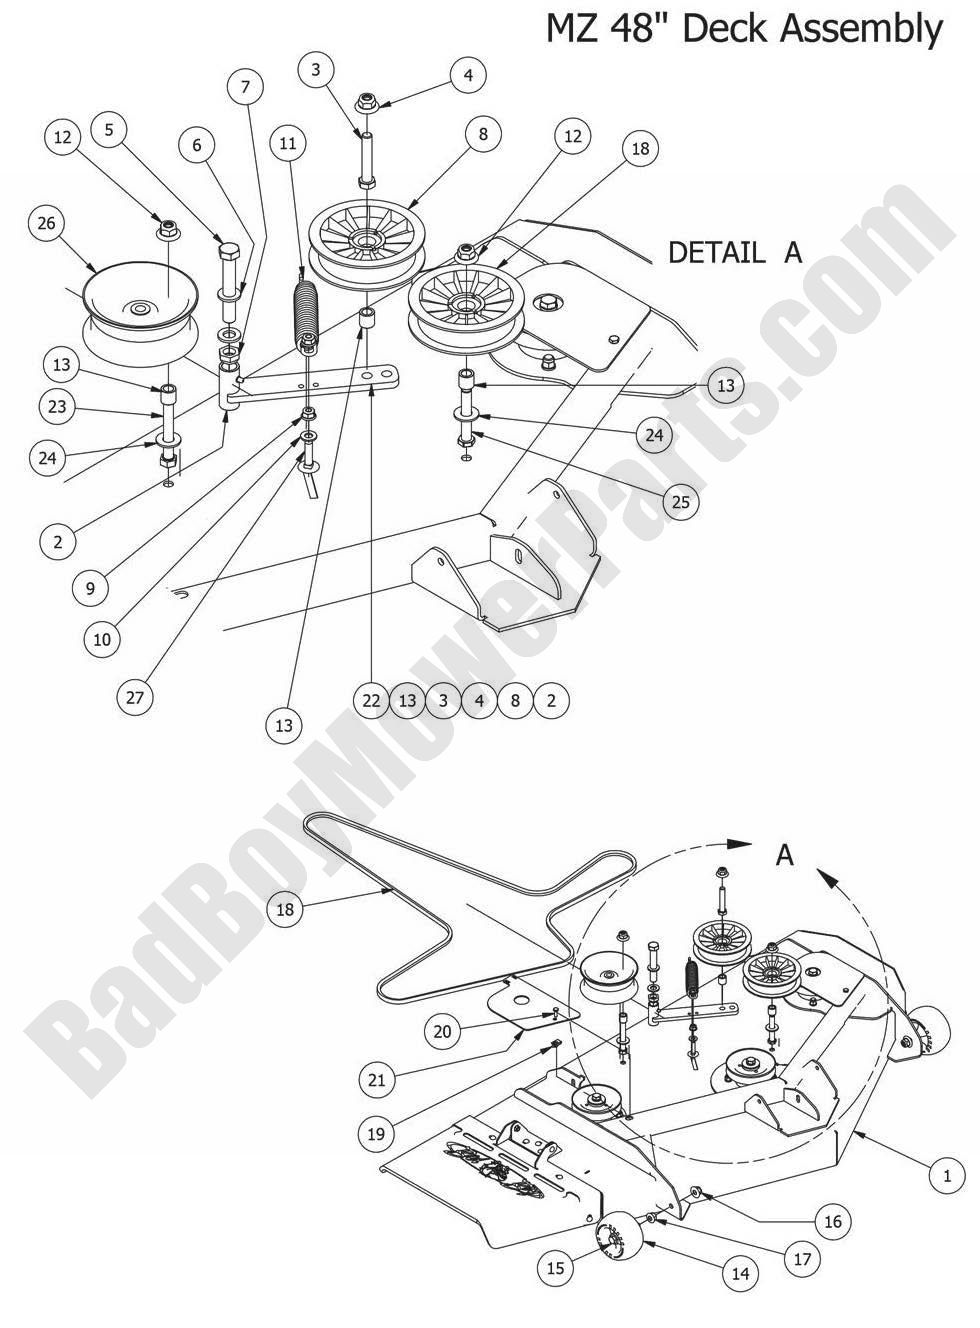 Bad Boy Mower Wiring Diagram Auto Electrical Renault Espace Towbar 2010 Mz Kawasaki 22 Hp 45